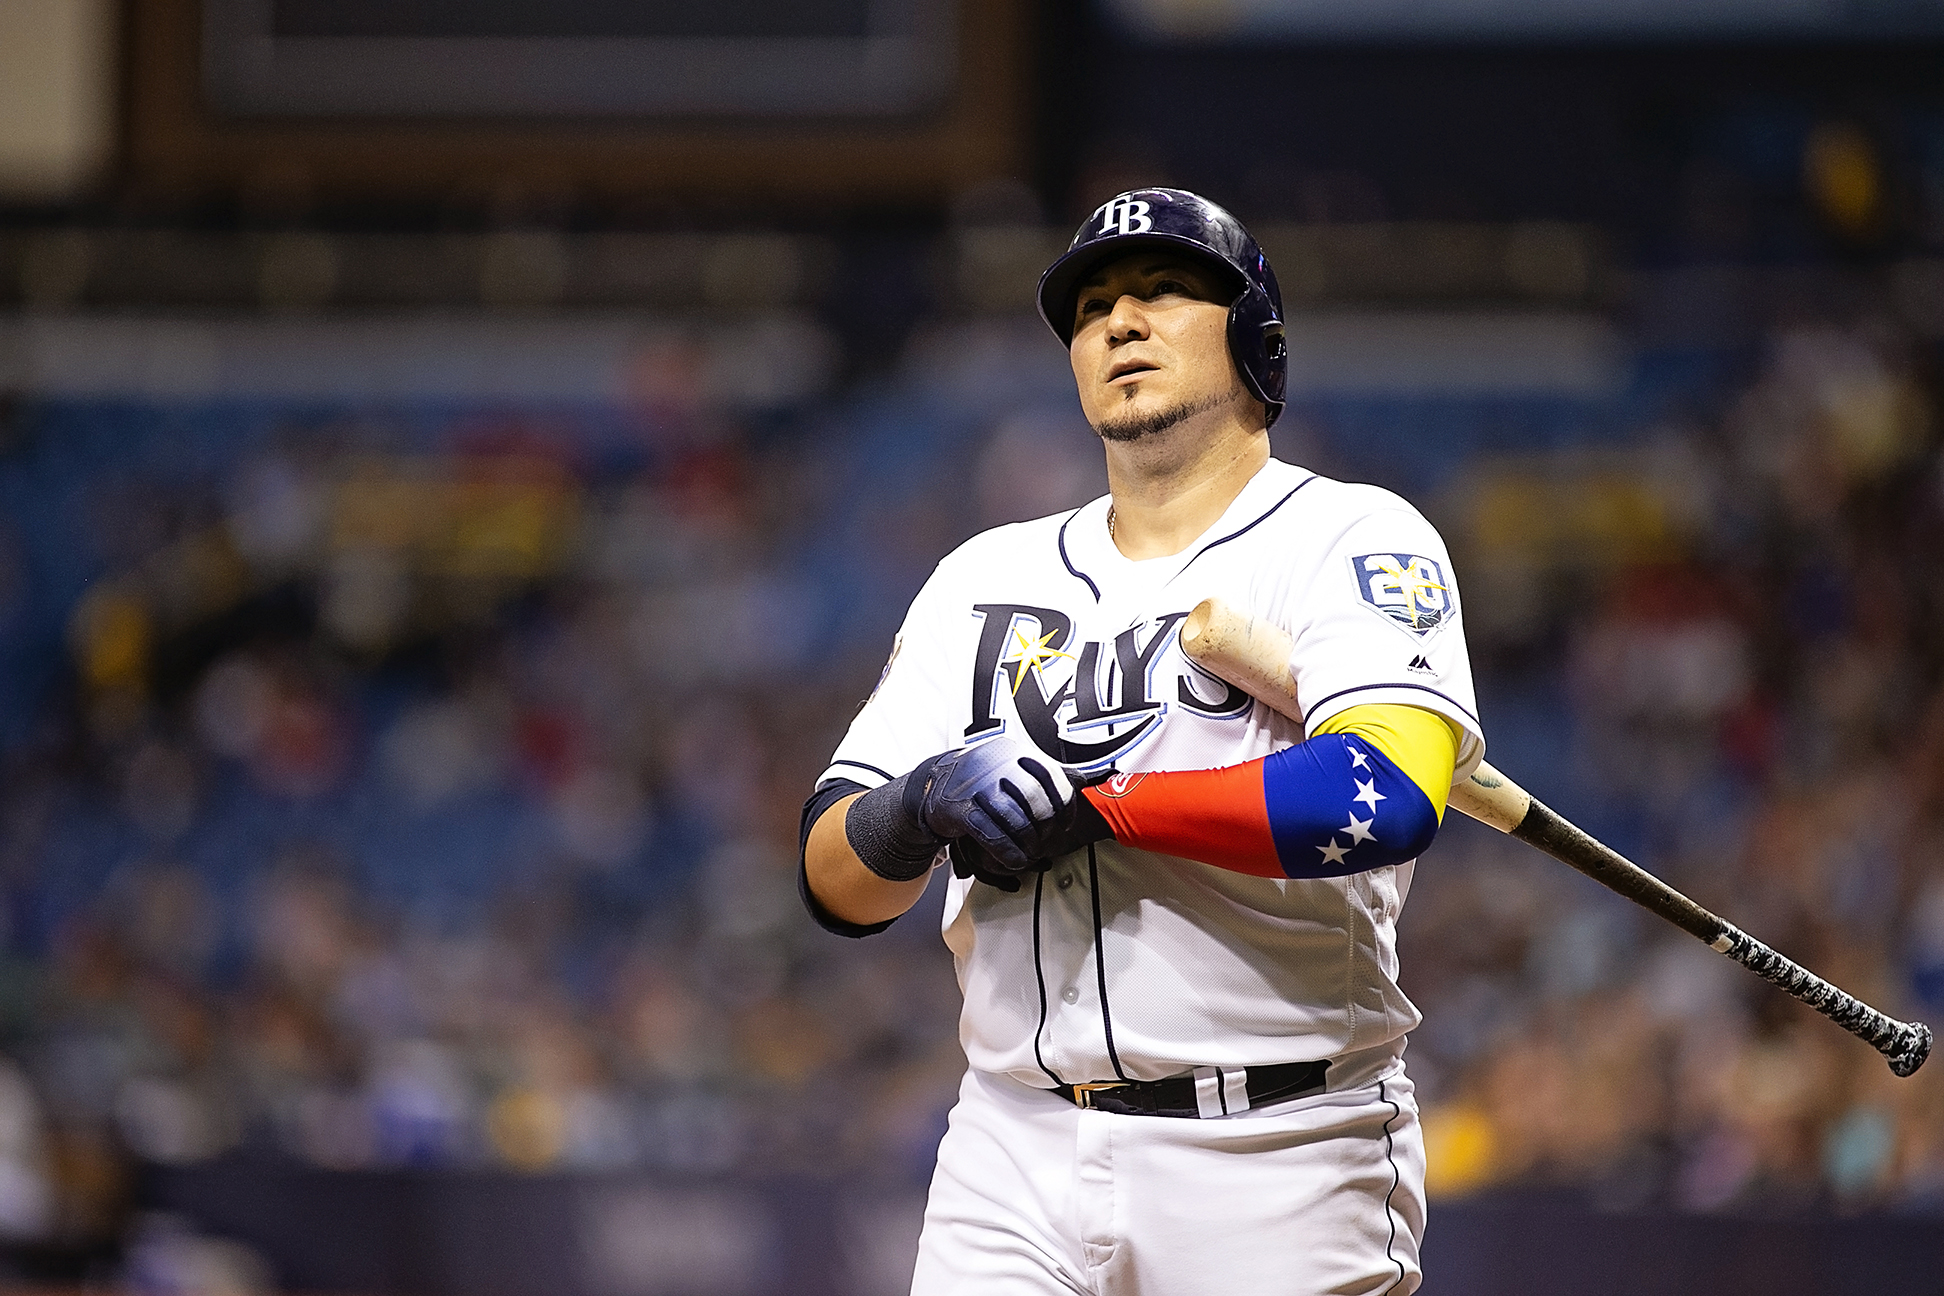 Sucre played well in the Rays' victory./CARMEN MANDATO